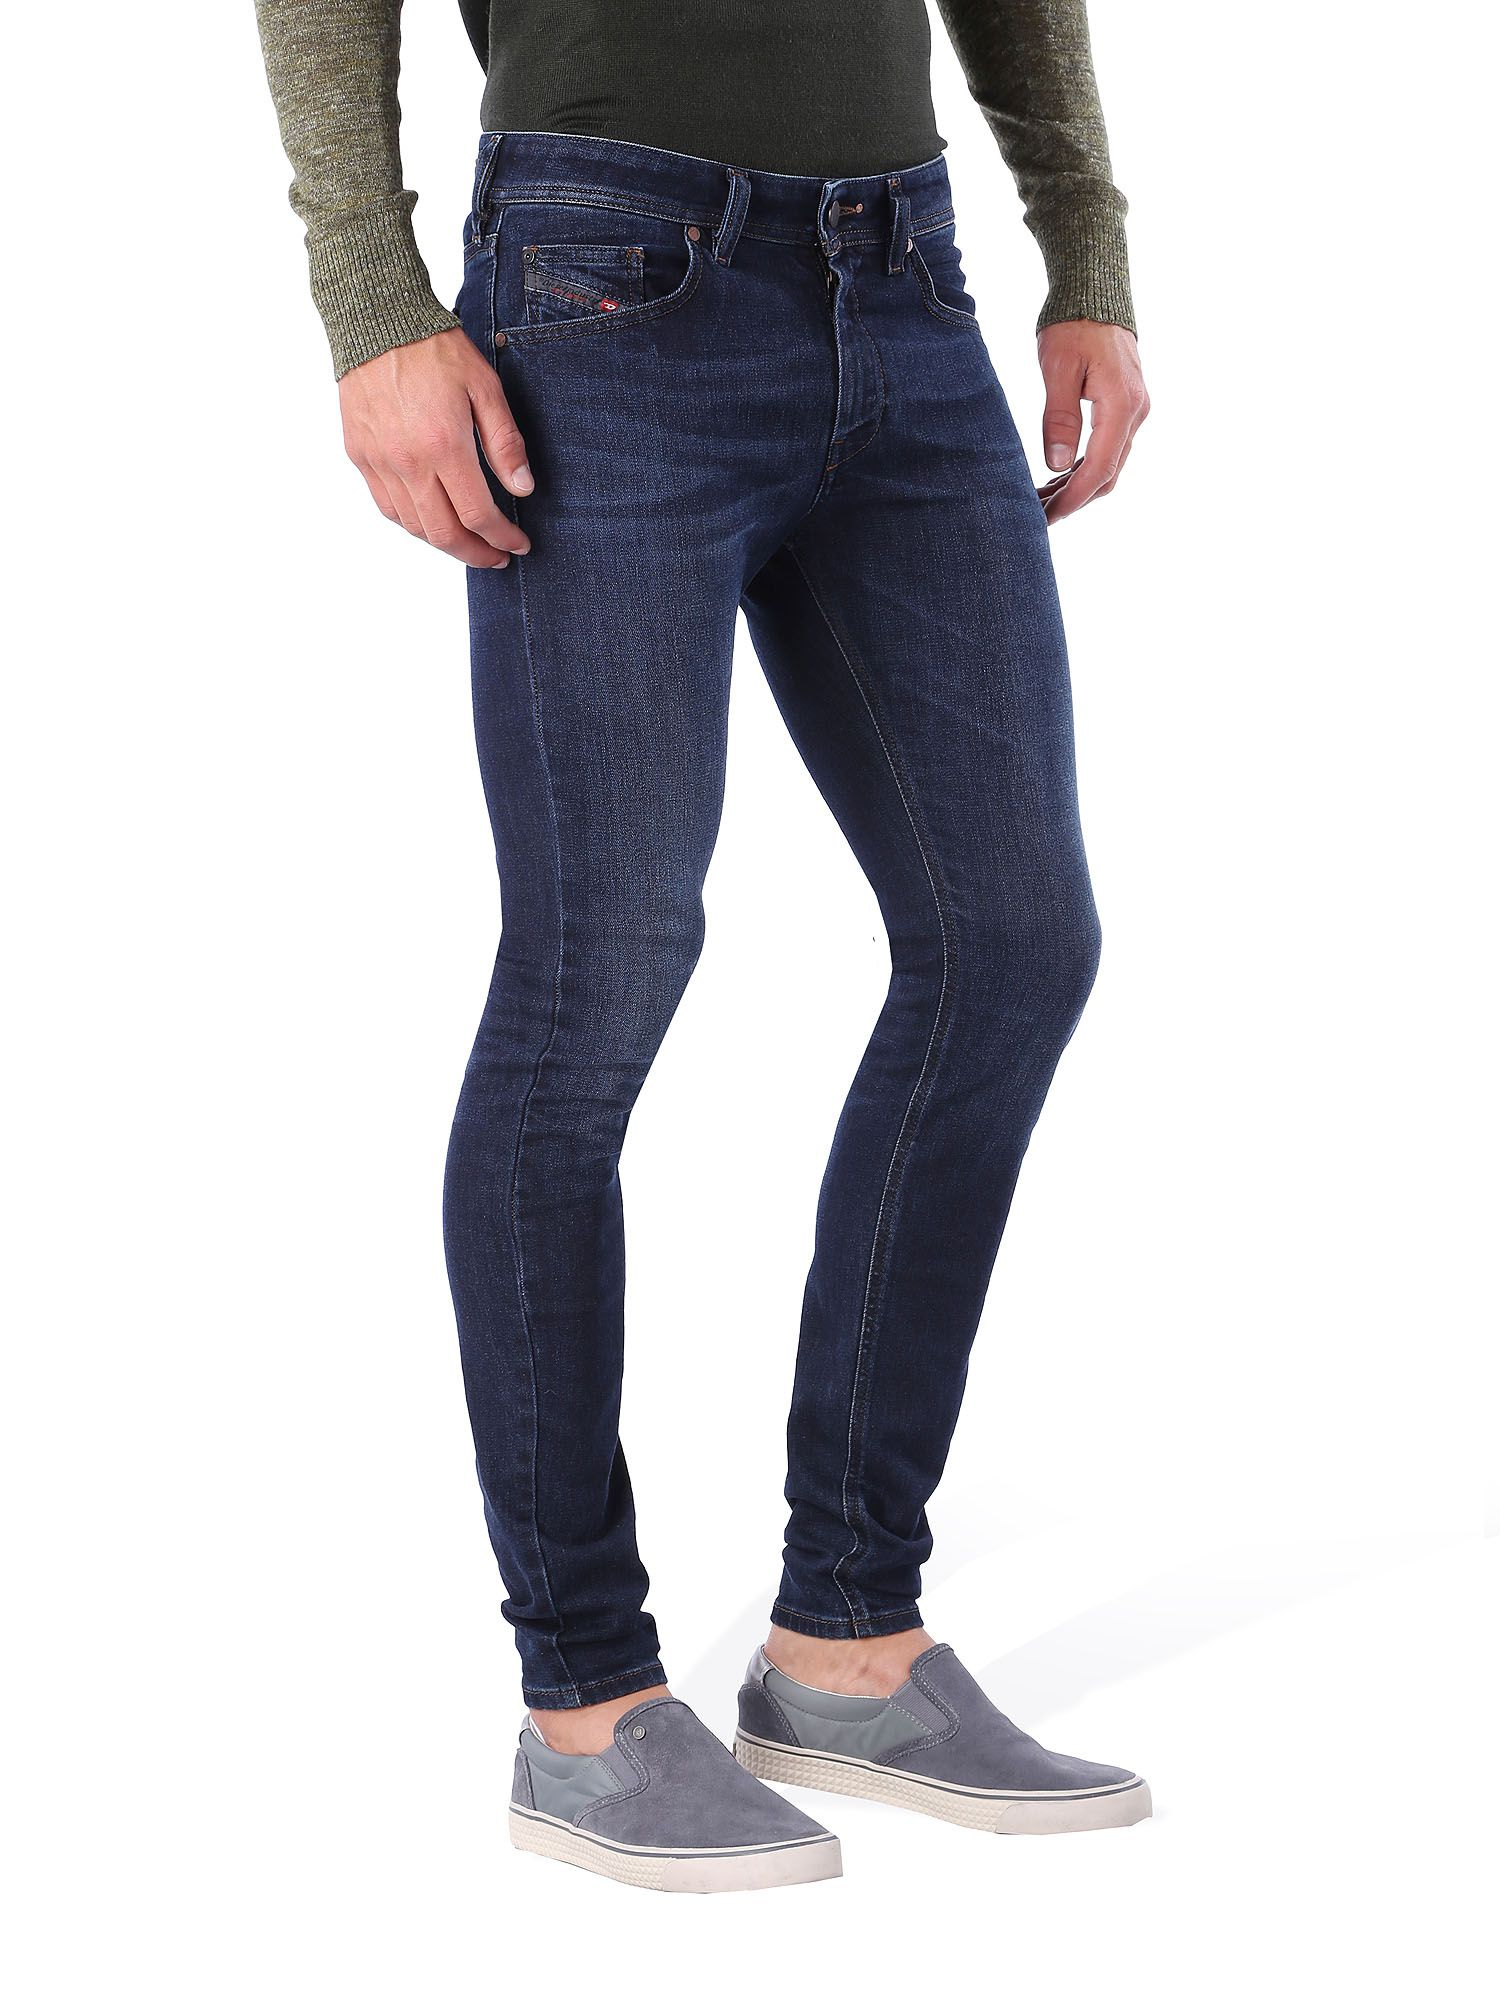 Add some style to your wardrobe with a great pair of skinny jeans from Gap. Be Amazed at the Flattering Look. Shop Gap to find the coolest pair of skinny jeans to show the world you're effortlessly on top of the latest fashion trends.